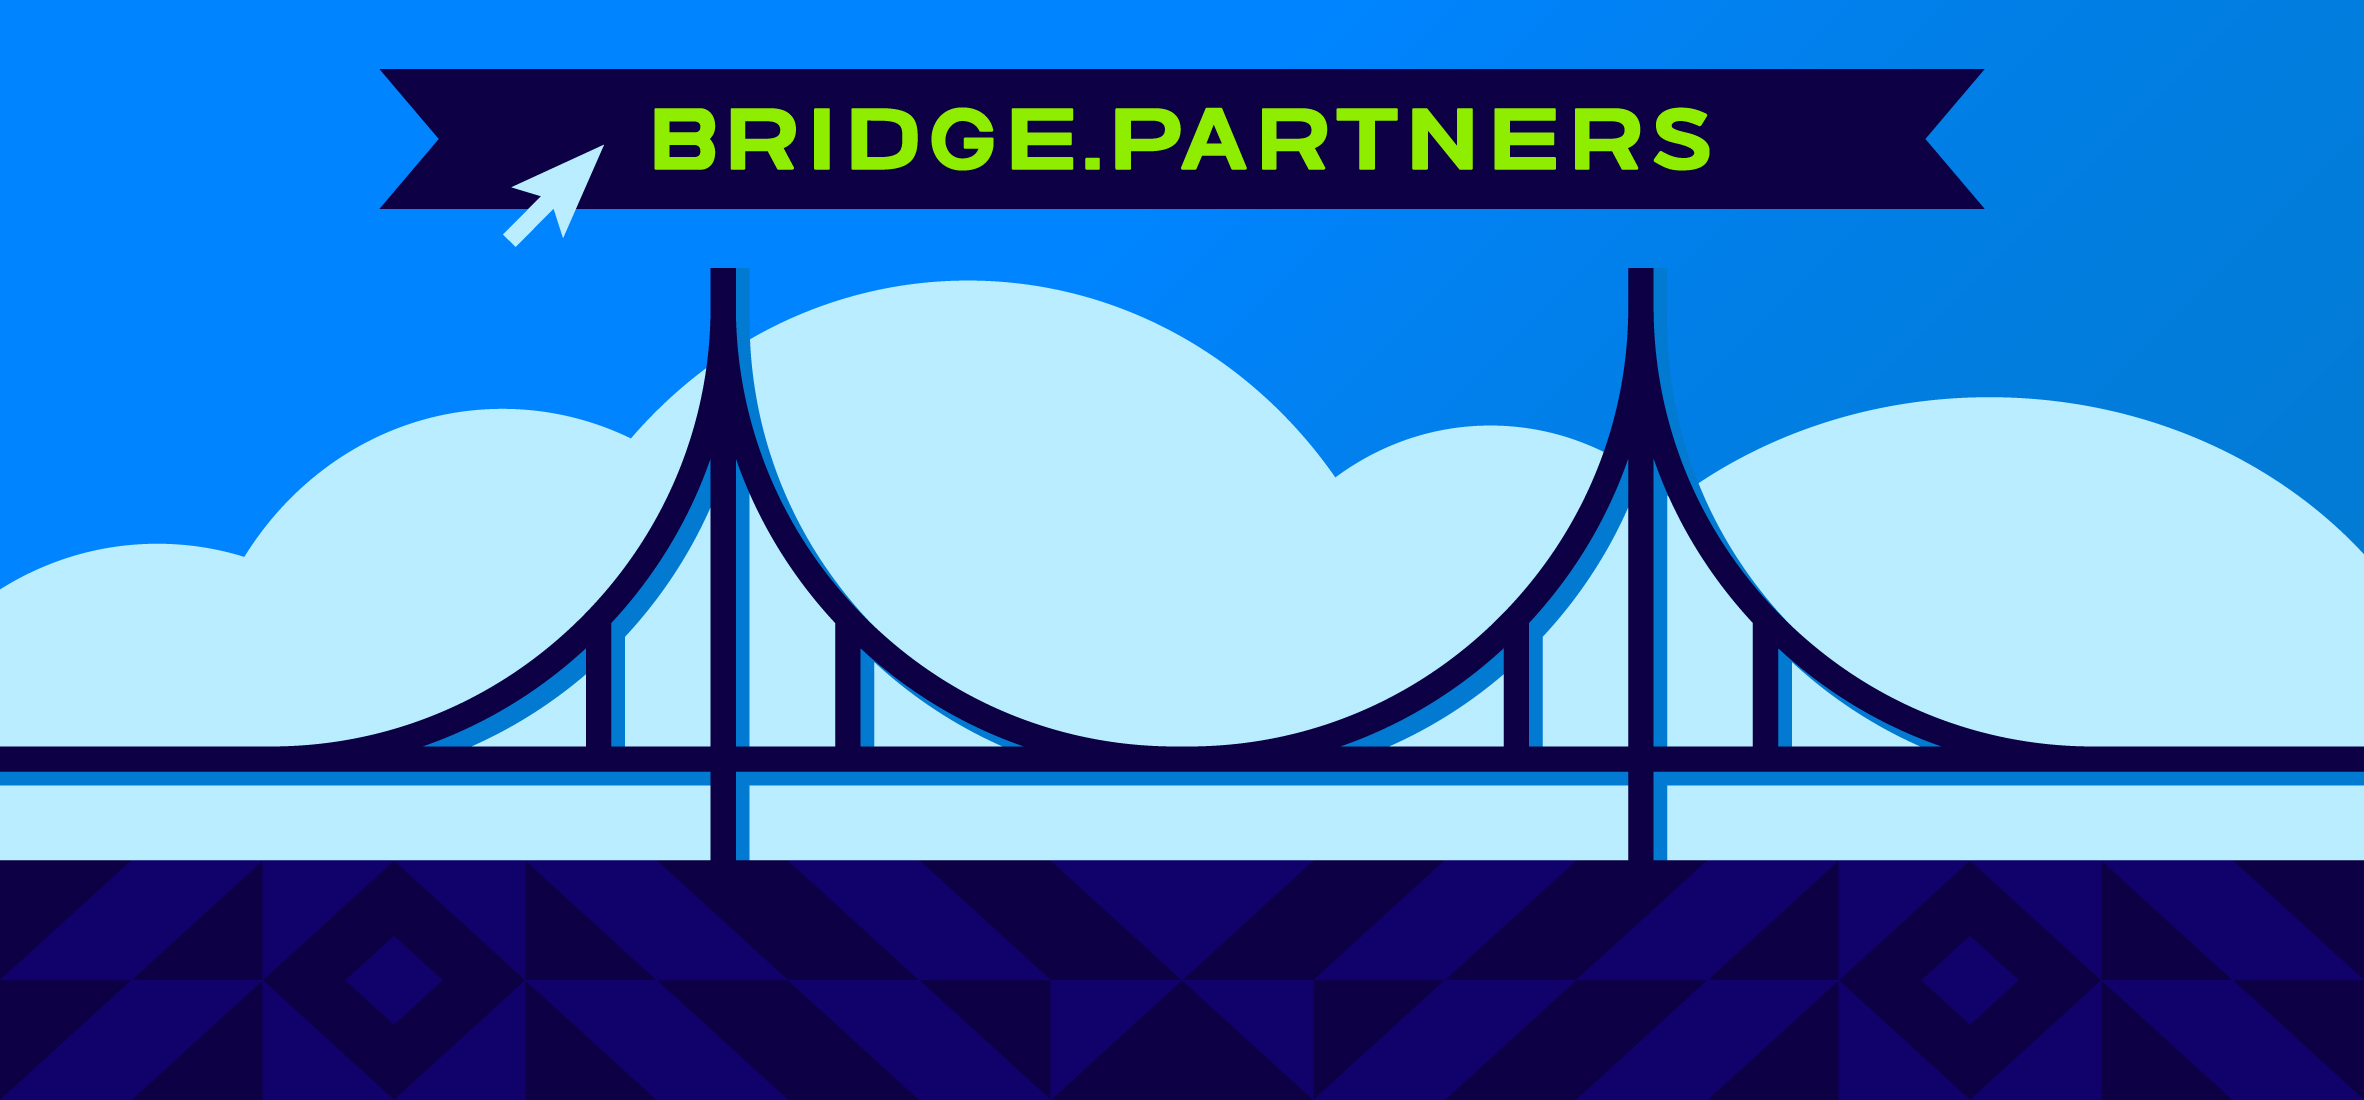 Bridge Partners Hero Image